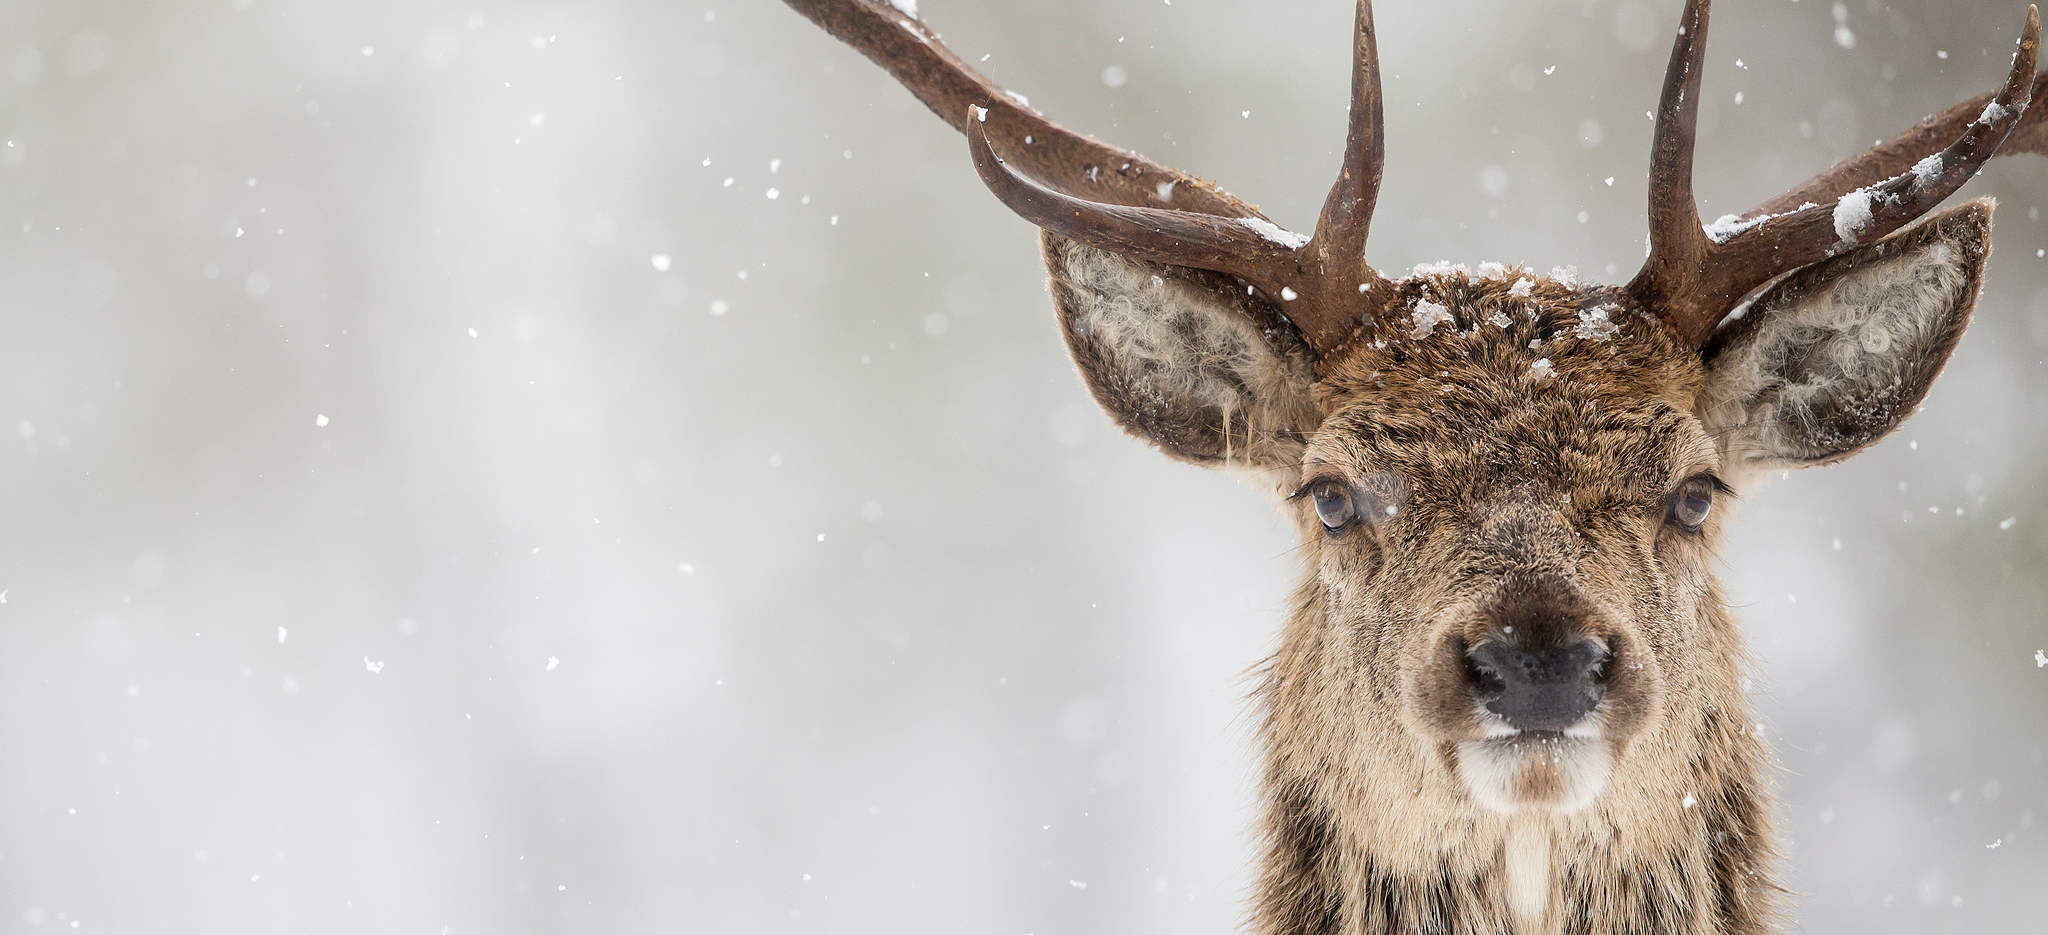 Natures Images - Wildlife Photography Holidays, Trips And